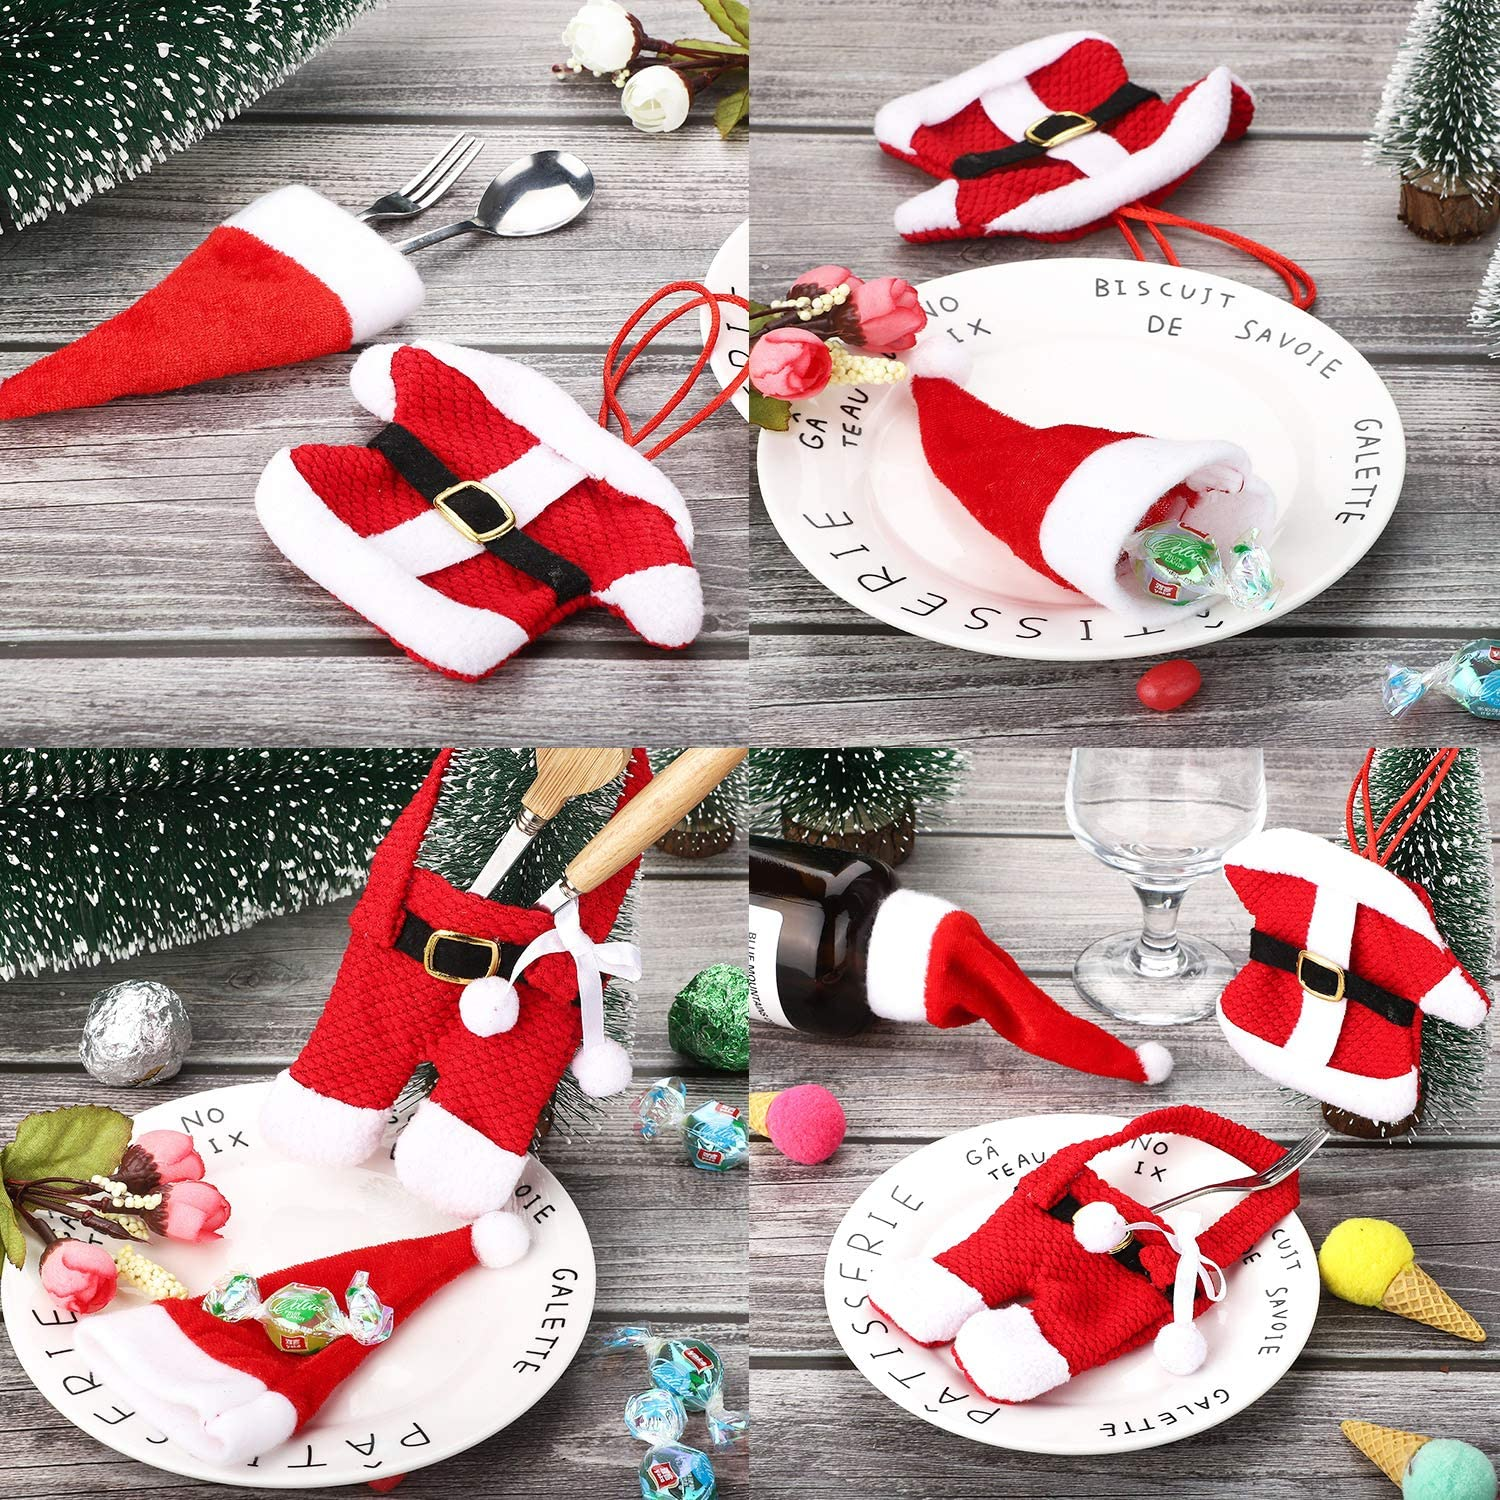 Chirstmas Cutlery Set Holder & Gift Box (Any 3 Set Free Shipping & 10% OFF)